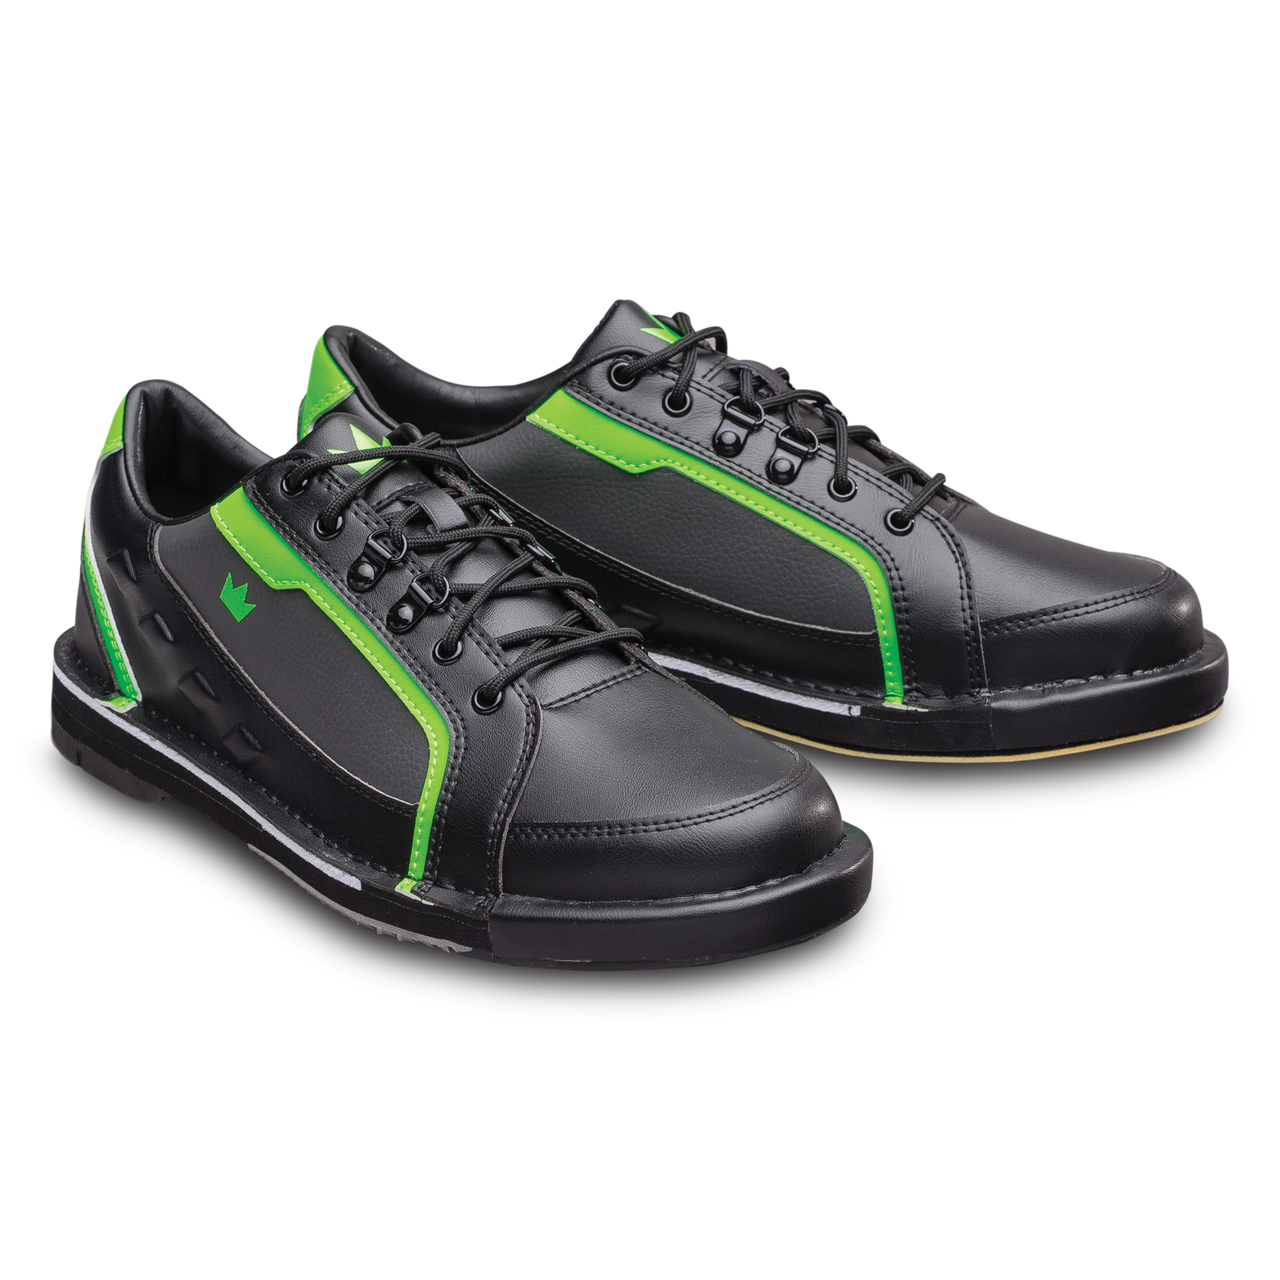 05cbcb638cfce0 Brunswick Punisher Mens Bowling Shoes Black/Neon Green Right Handed ...